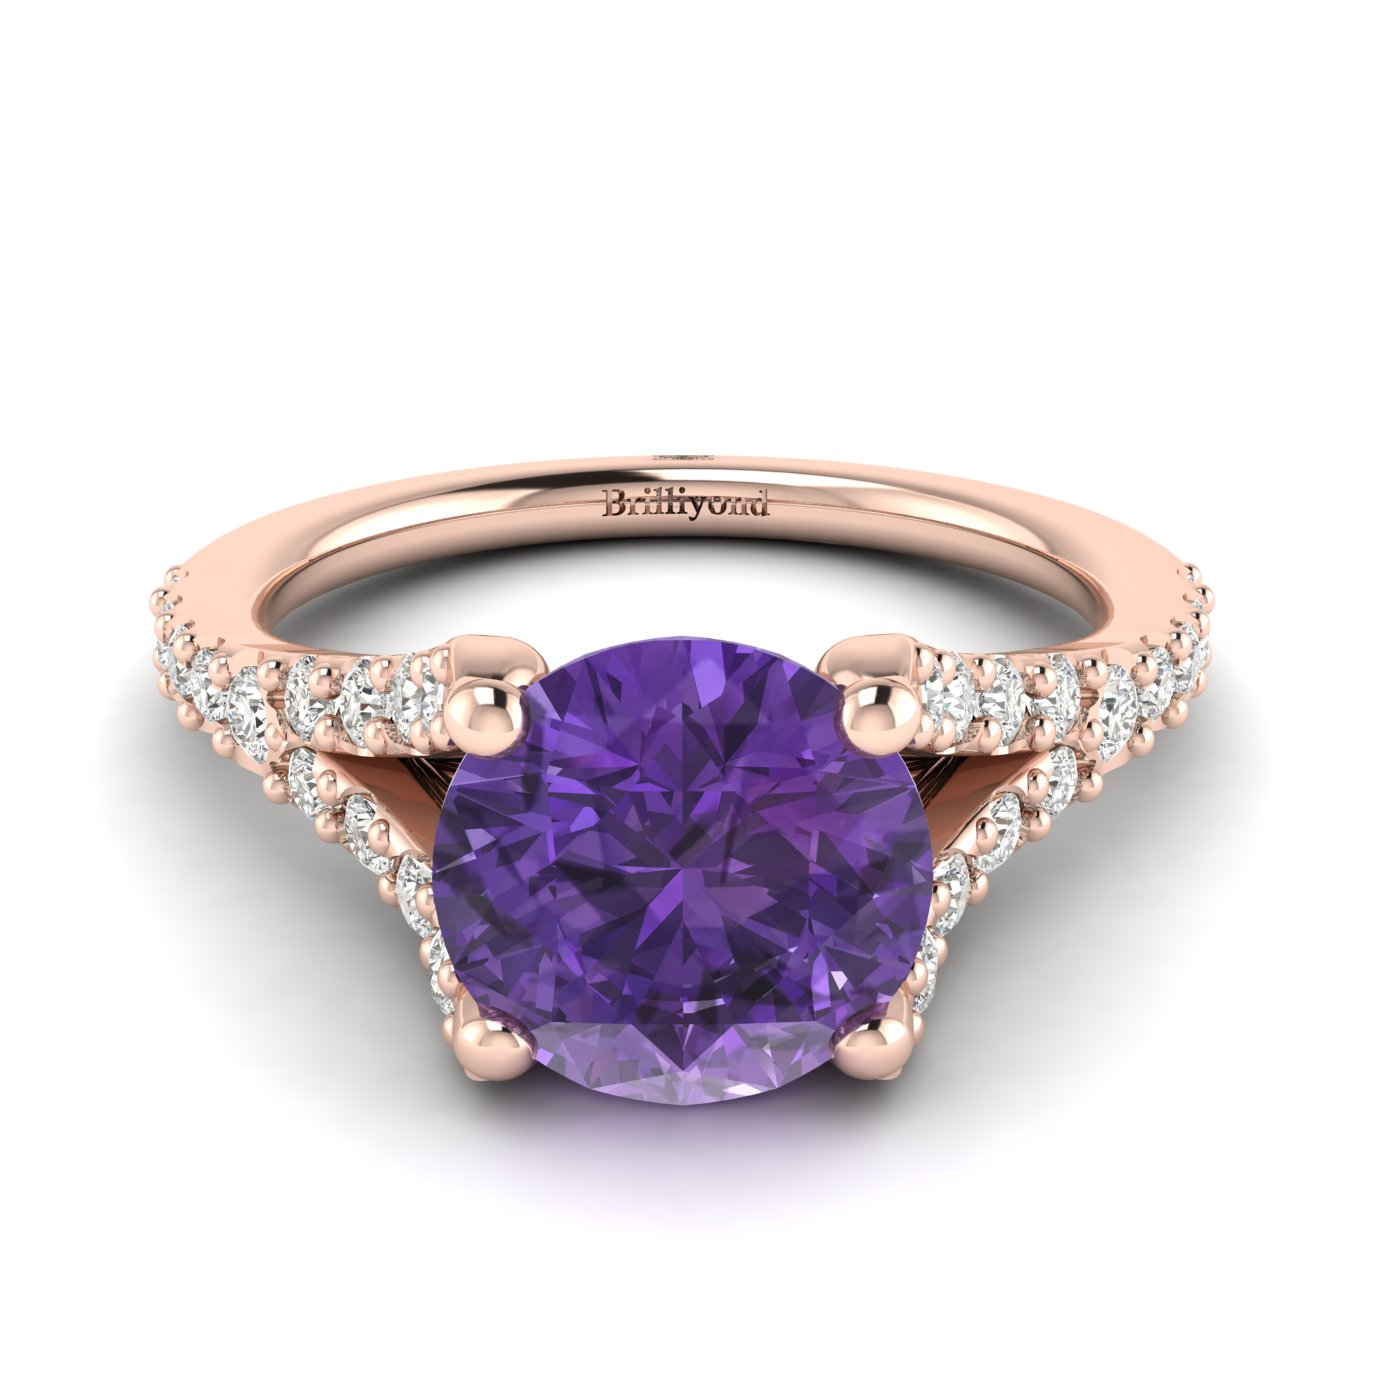 A four-pronged 6mm natural amethyst centre stone in a round cut setting.